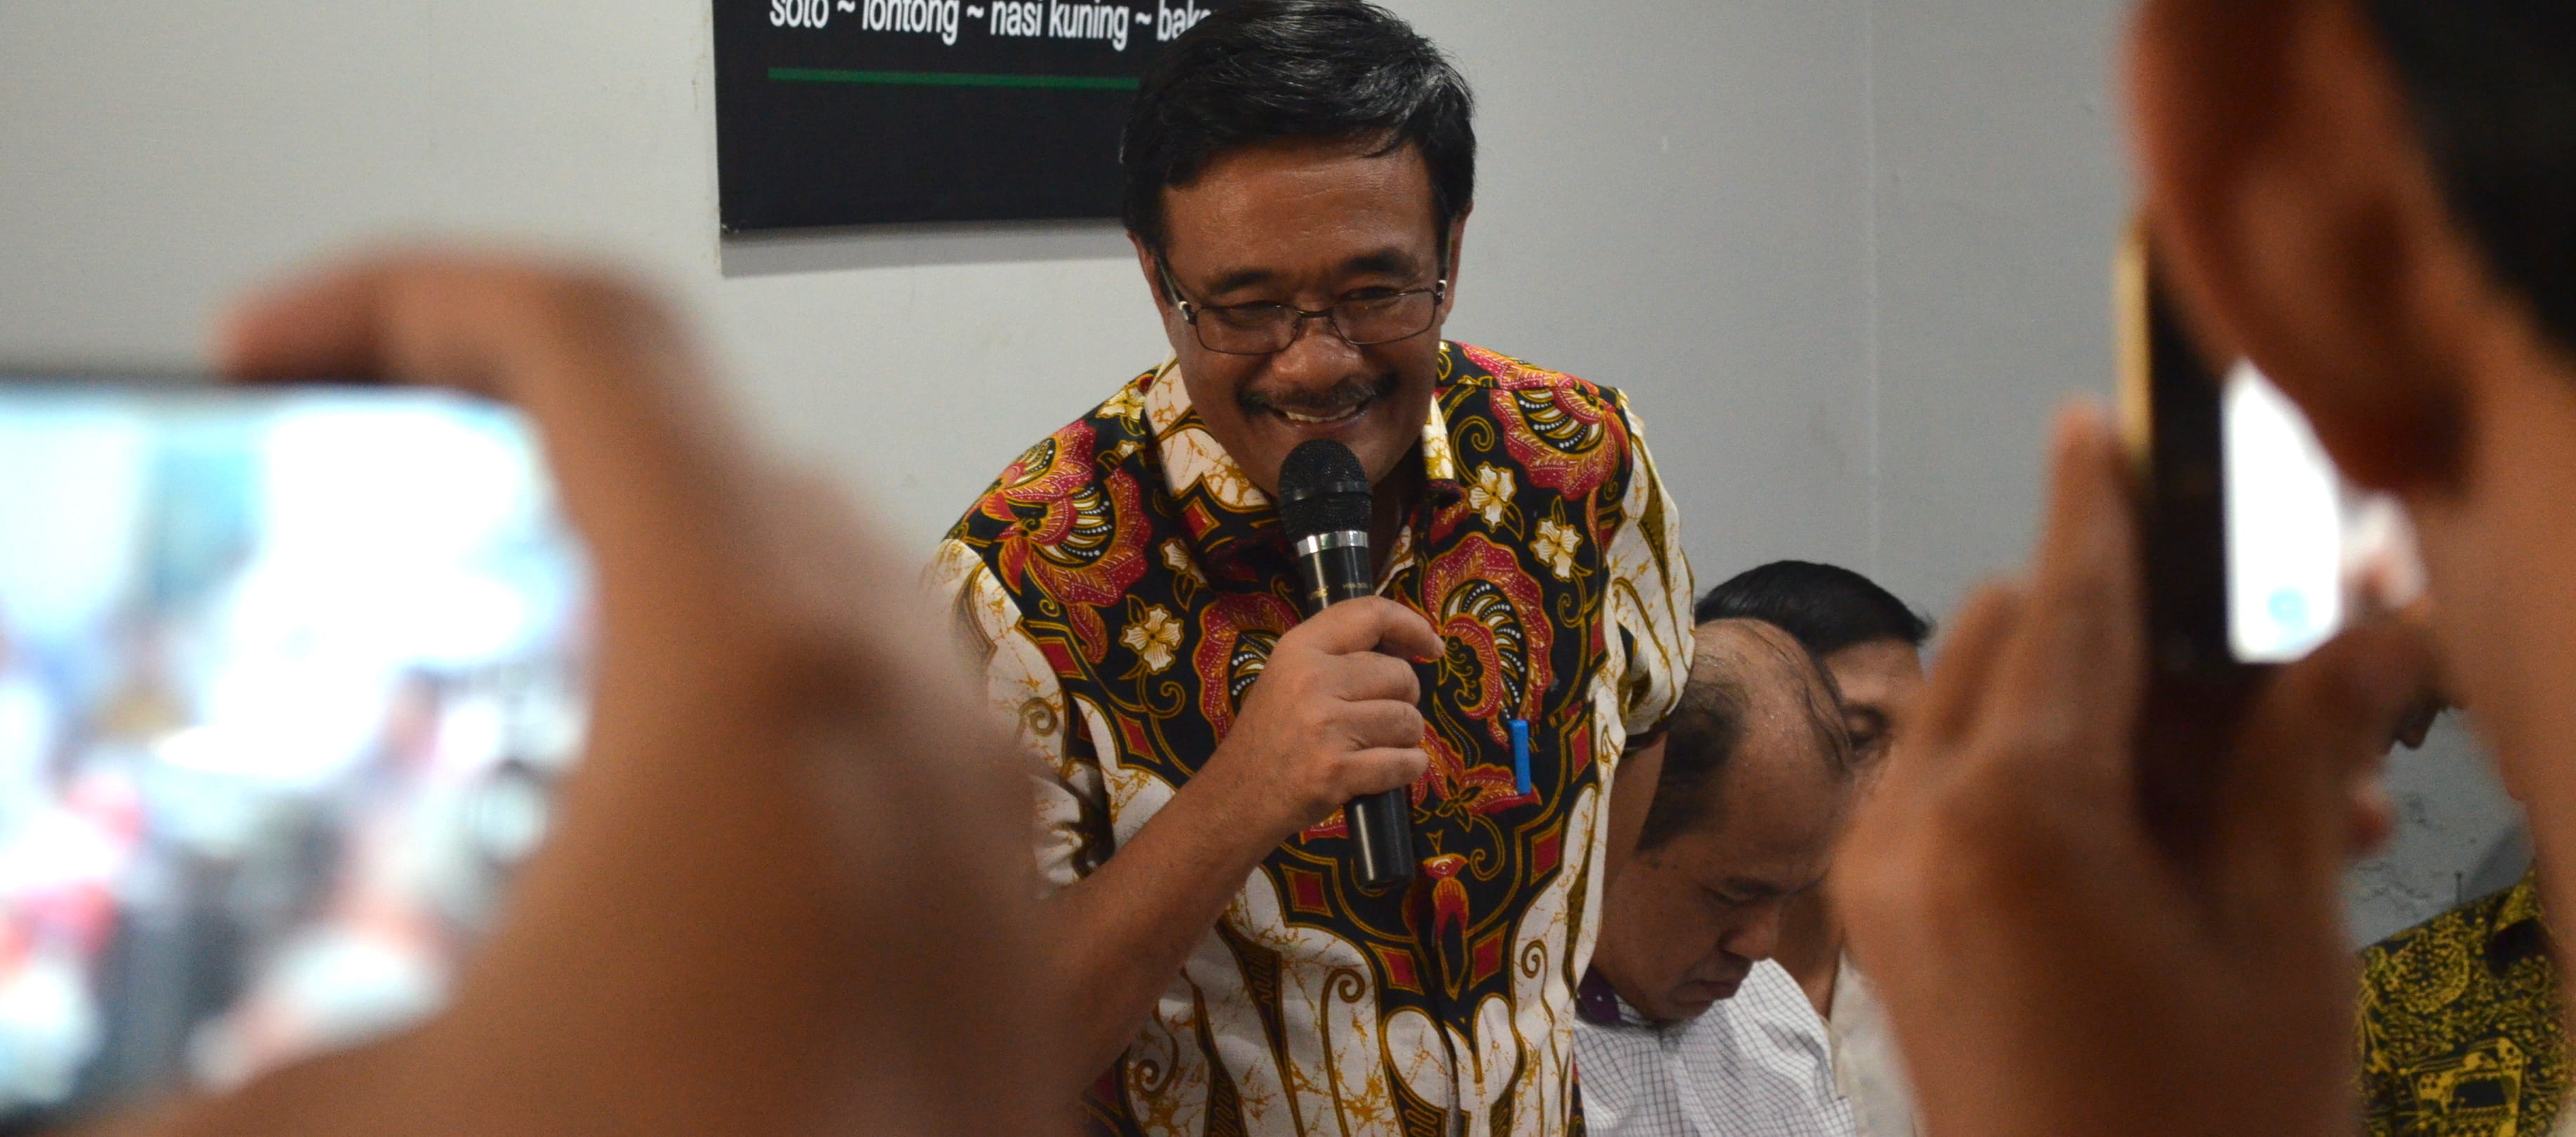 Djarot Saiful Hidayat campaigns at Sobat Cafe, Medan (Photo: Teguh Harahap)